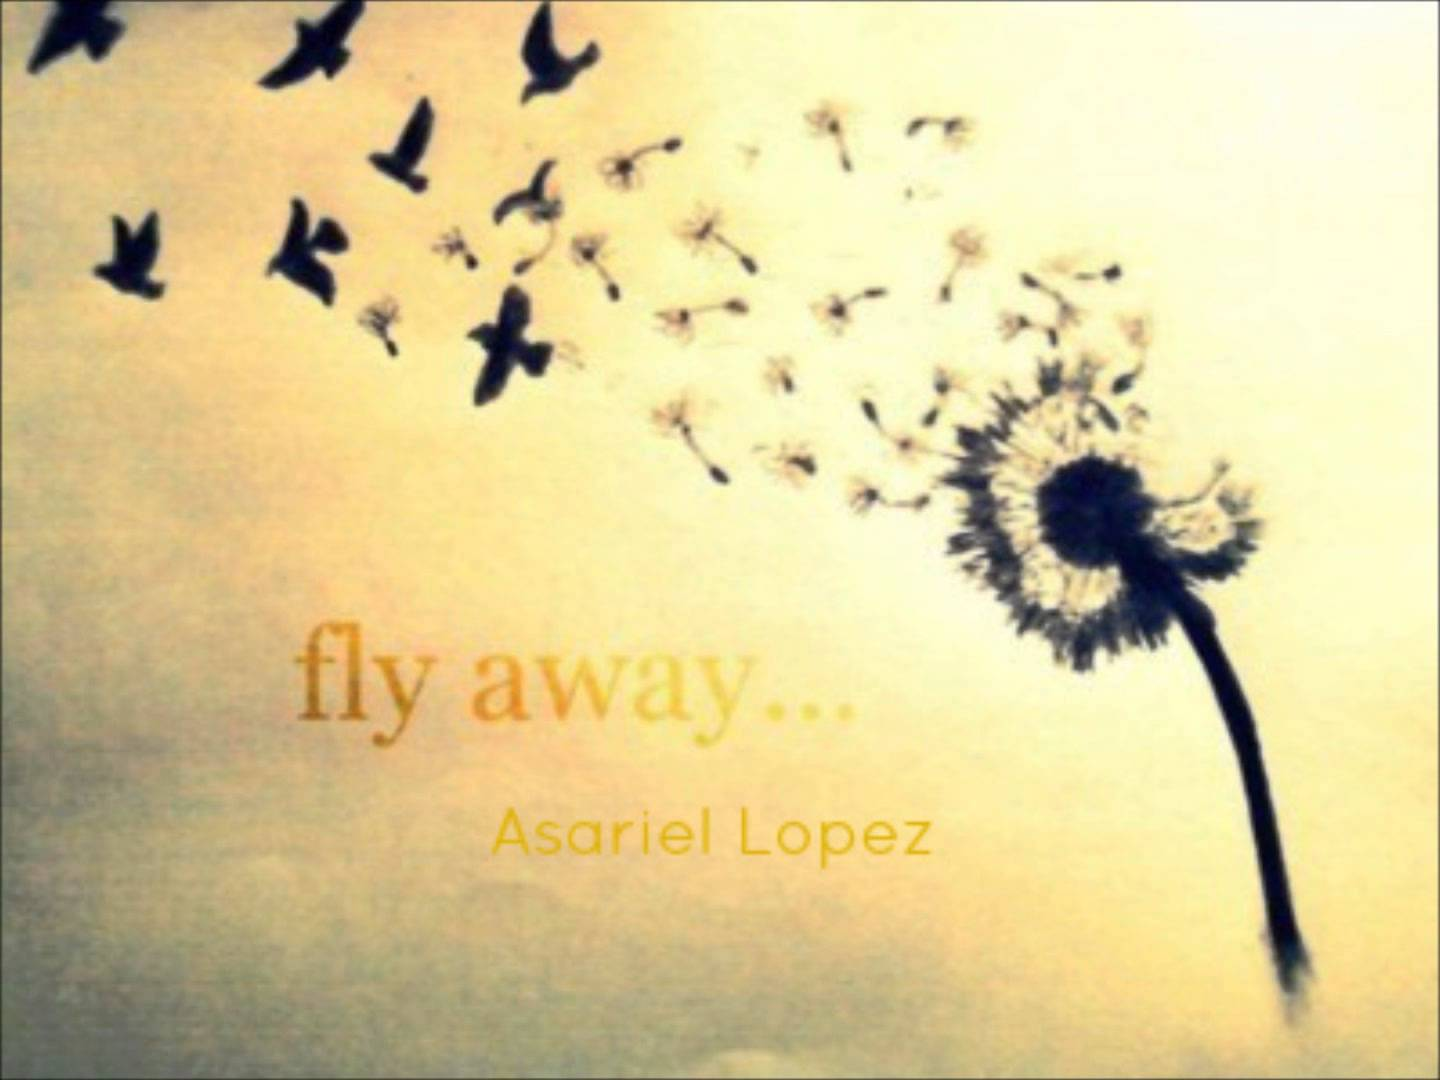 1440x1080 Fly Away (Acoustic Cover)